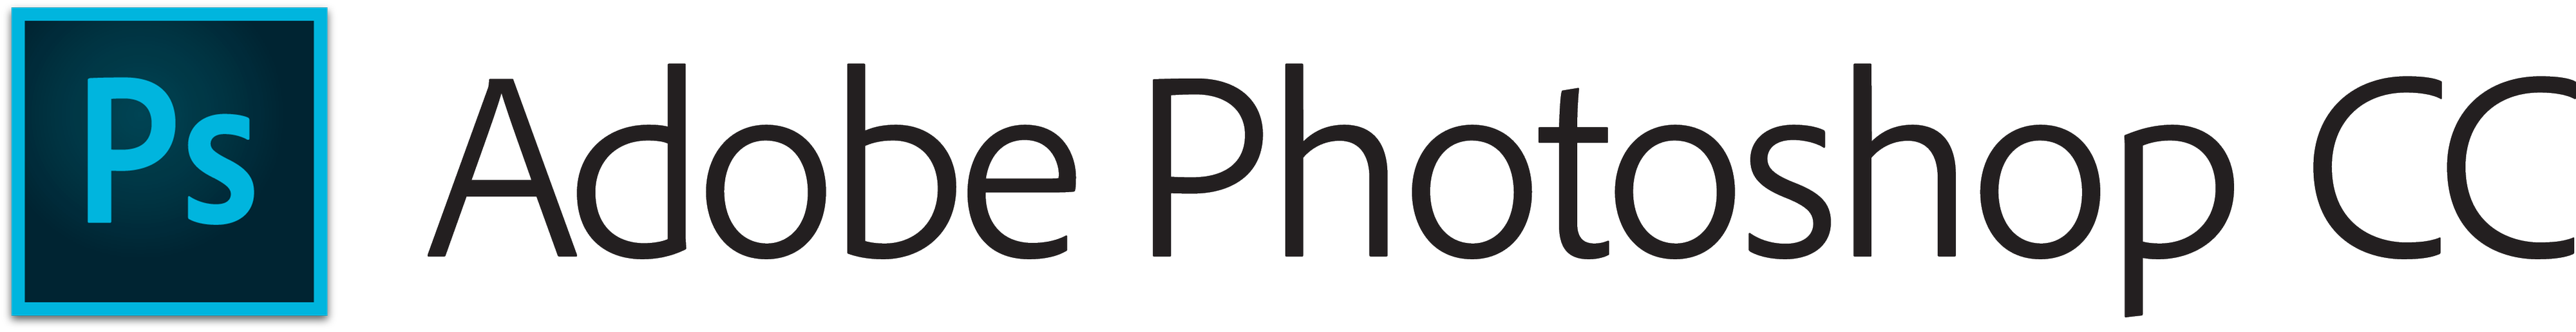 Adobe photoshop cc logo png. Creative cloud photography plan